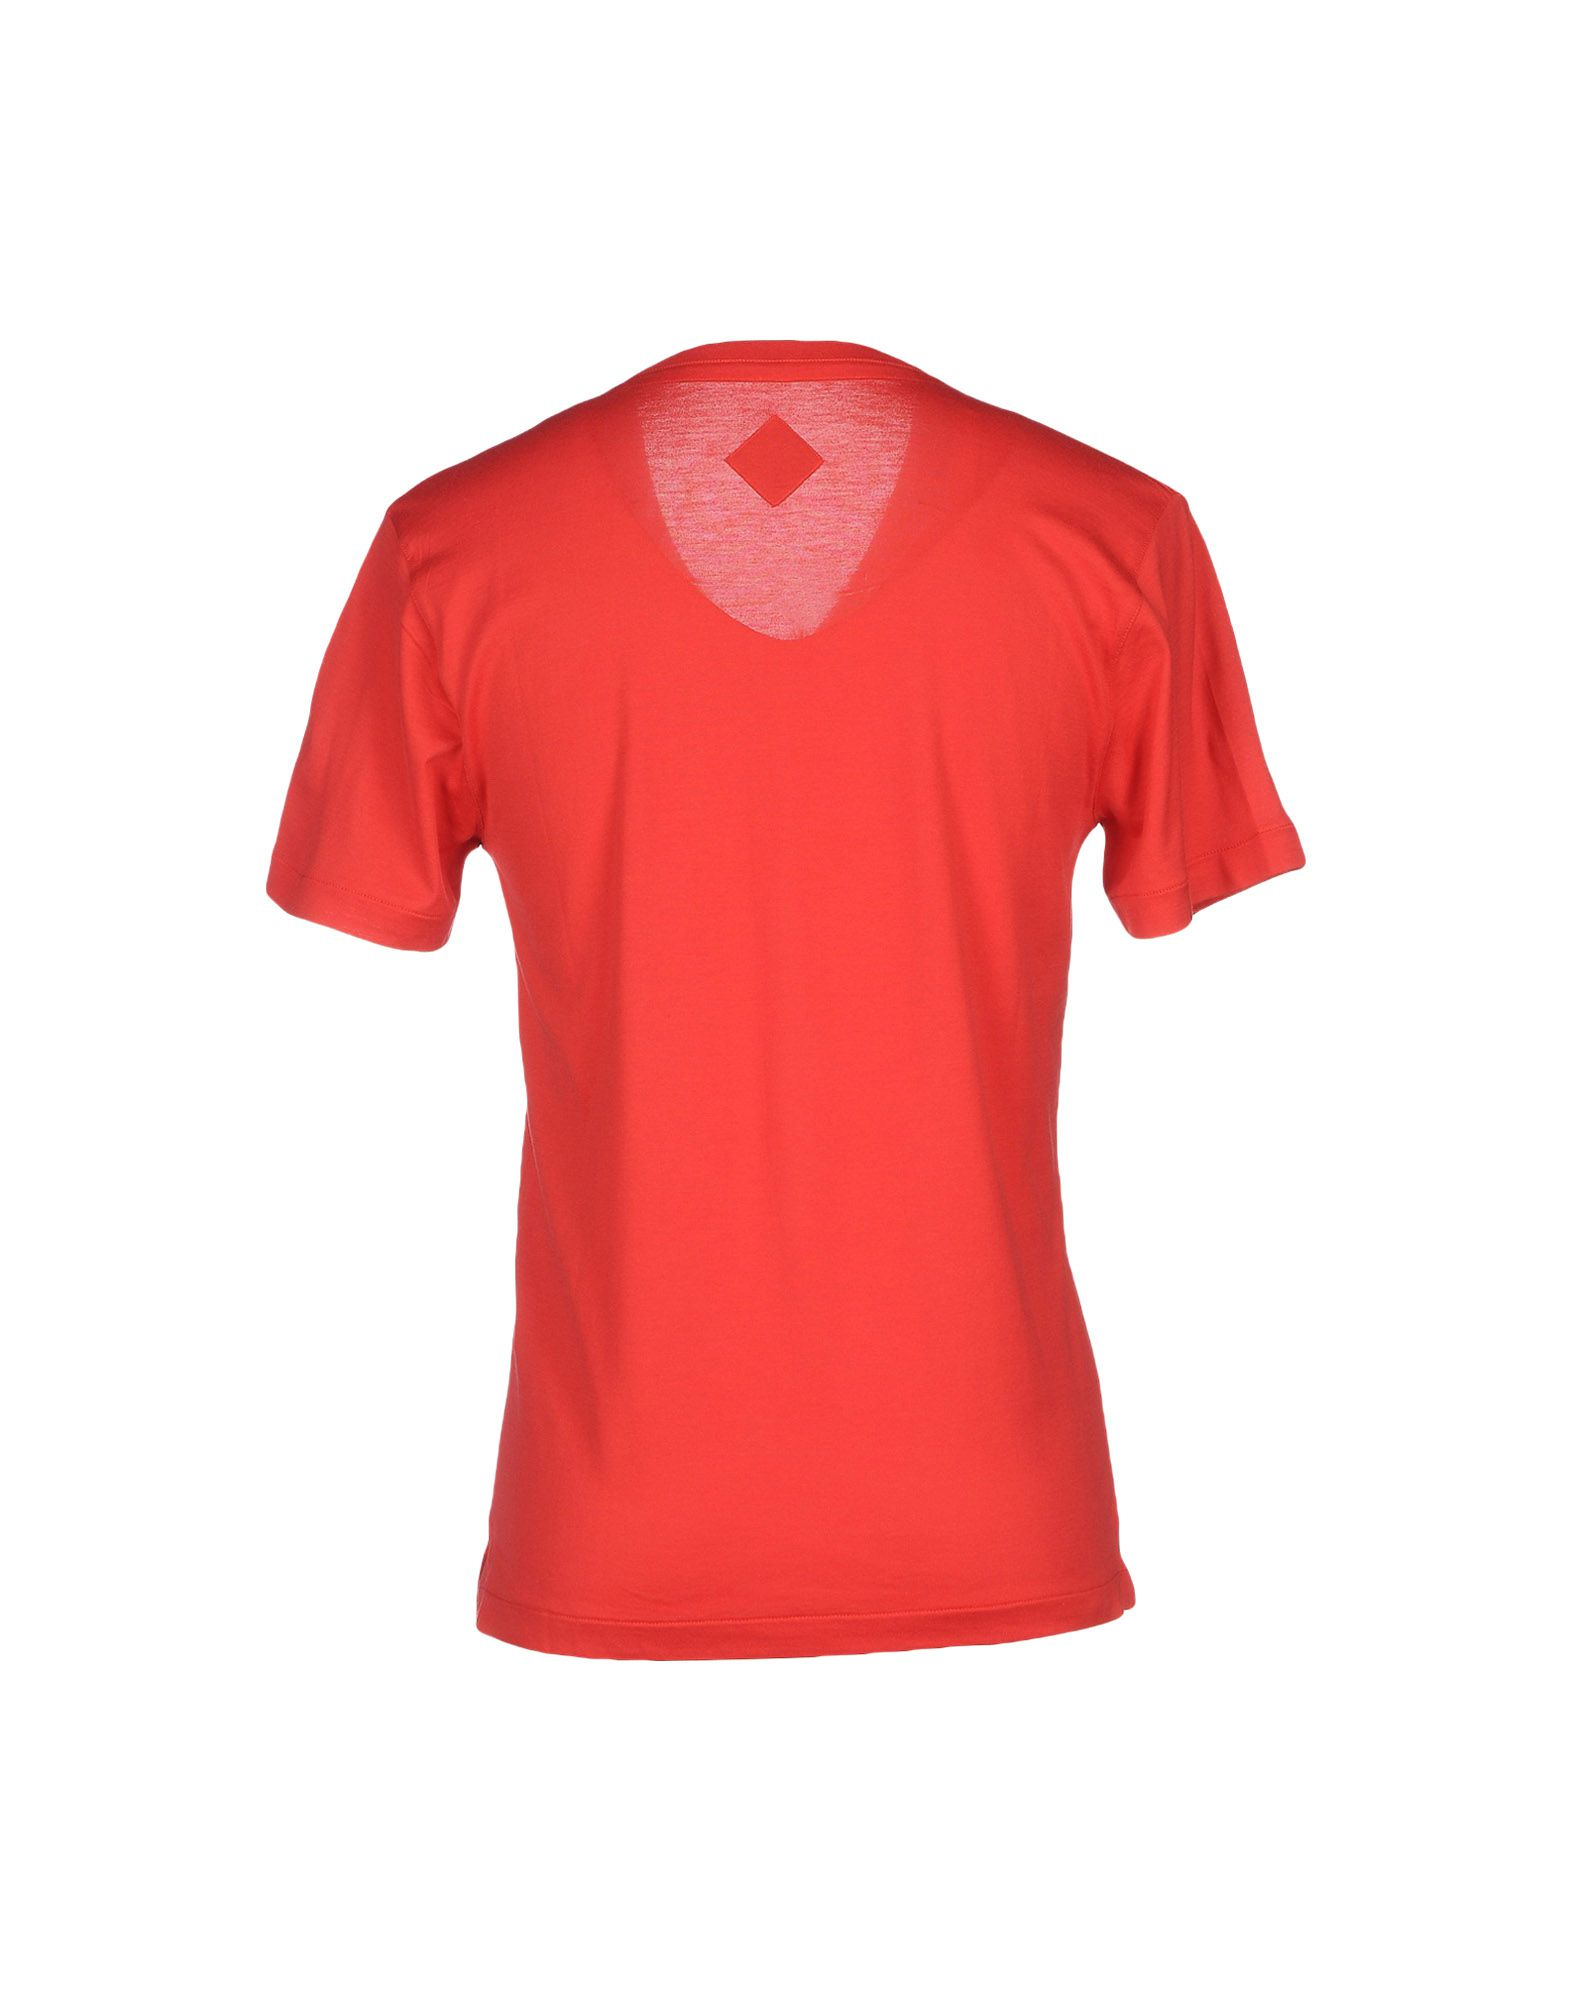 Lyst billionaire t shirt in red for men for Lands end logo shirts